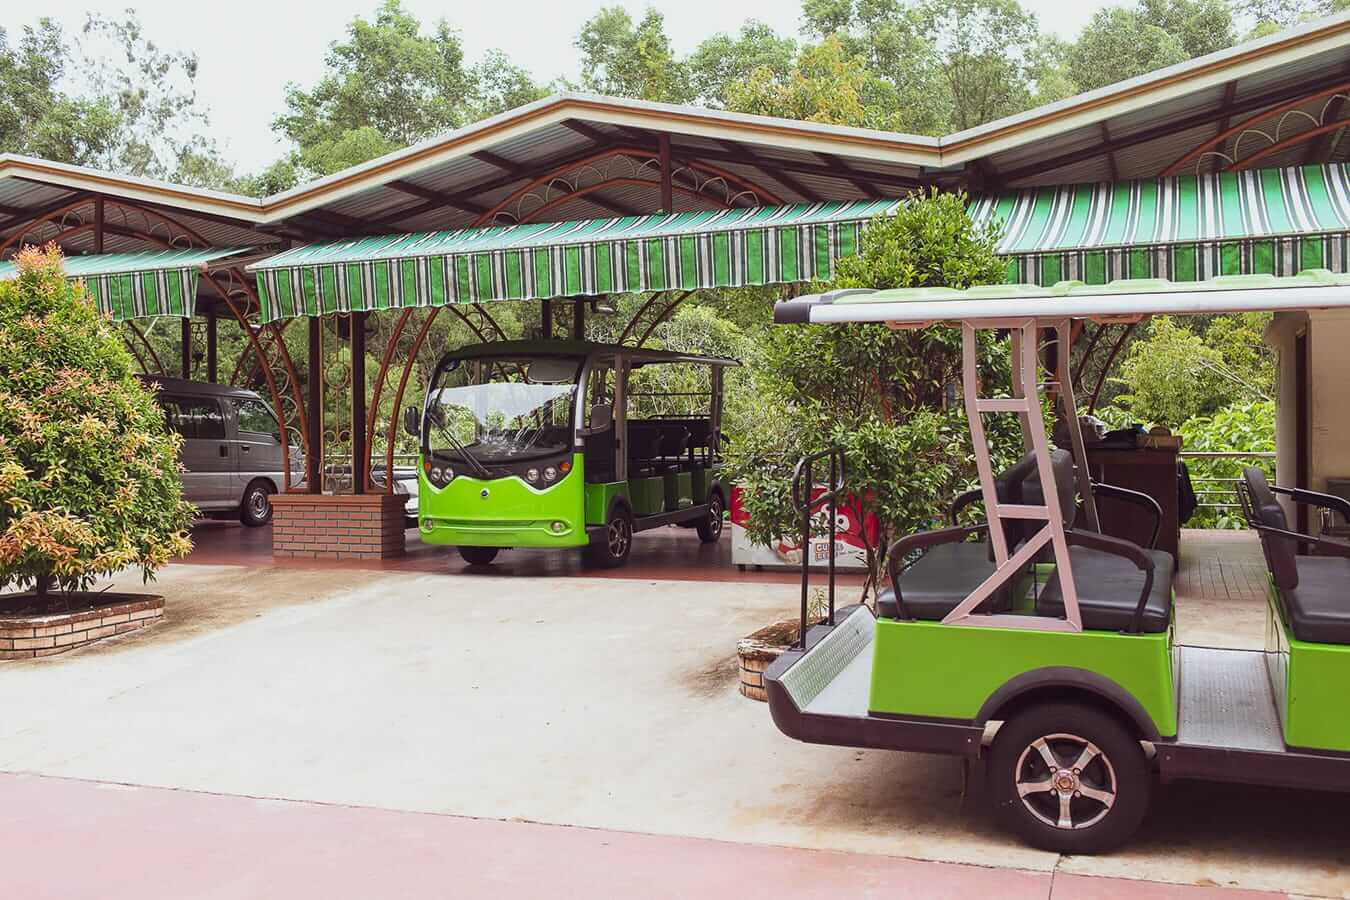 Electric buses at the sanctuary